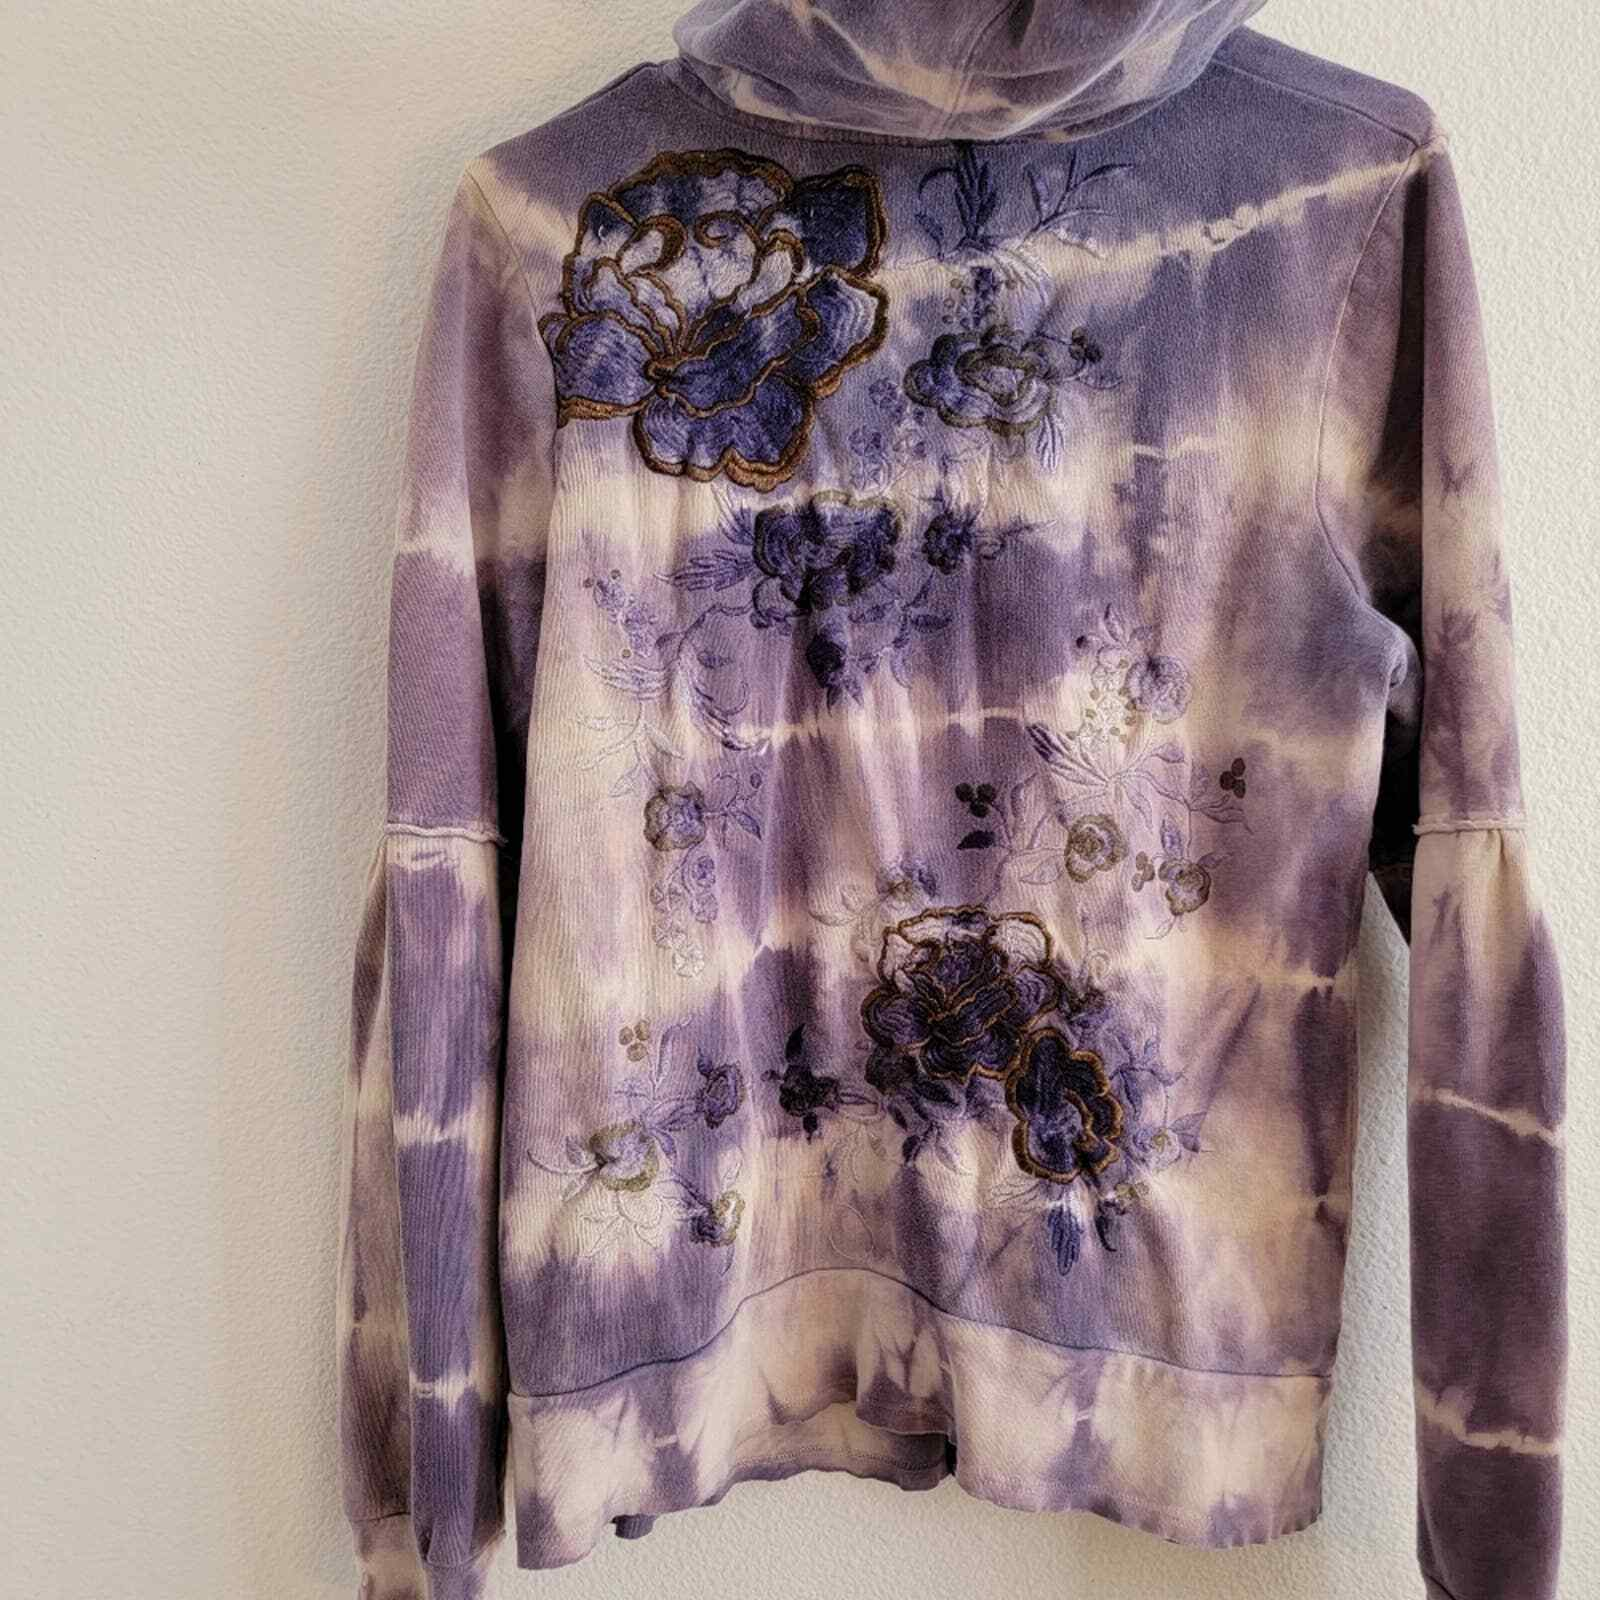 Penelope Violet Tie-Dye Embroidered Zip Up Sweater - image 10